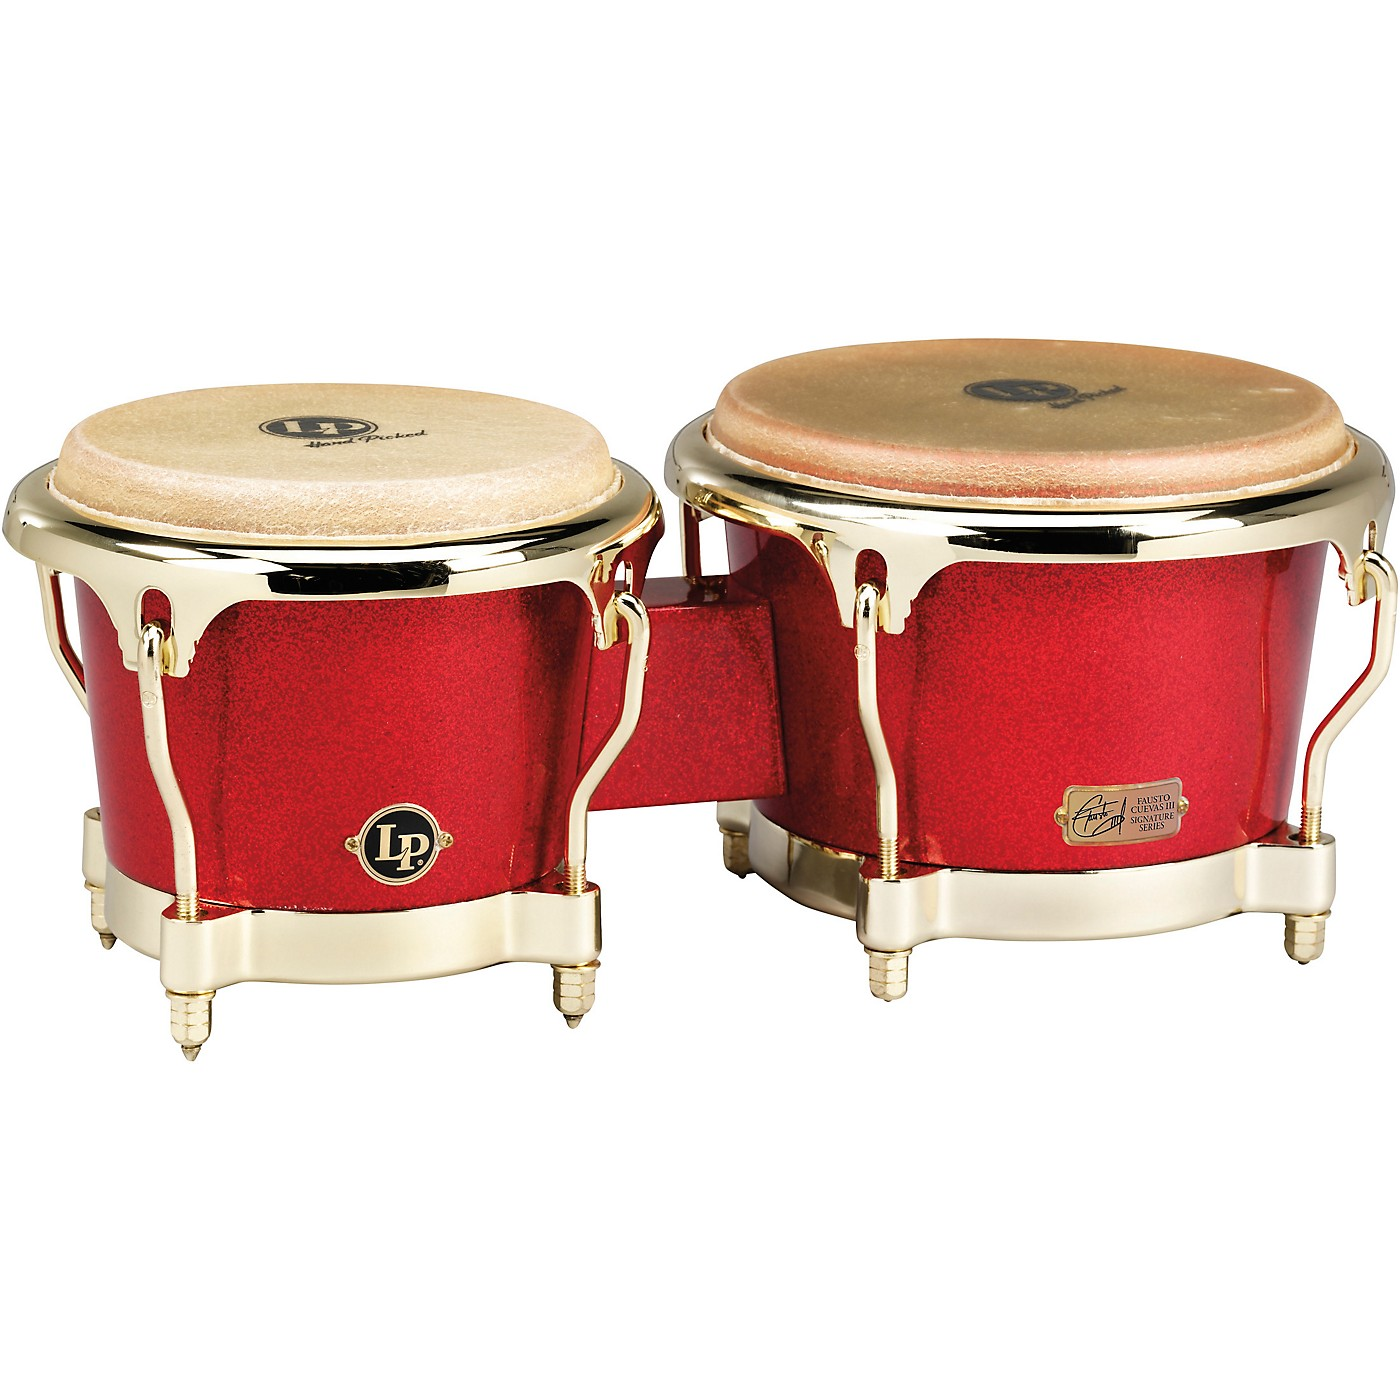 LP Galaxy Series Fiberglass Fausto Cuevas III Signature Bongos, Arena Red with Gold Hardware thumbnail